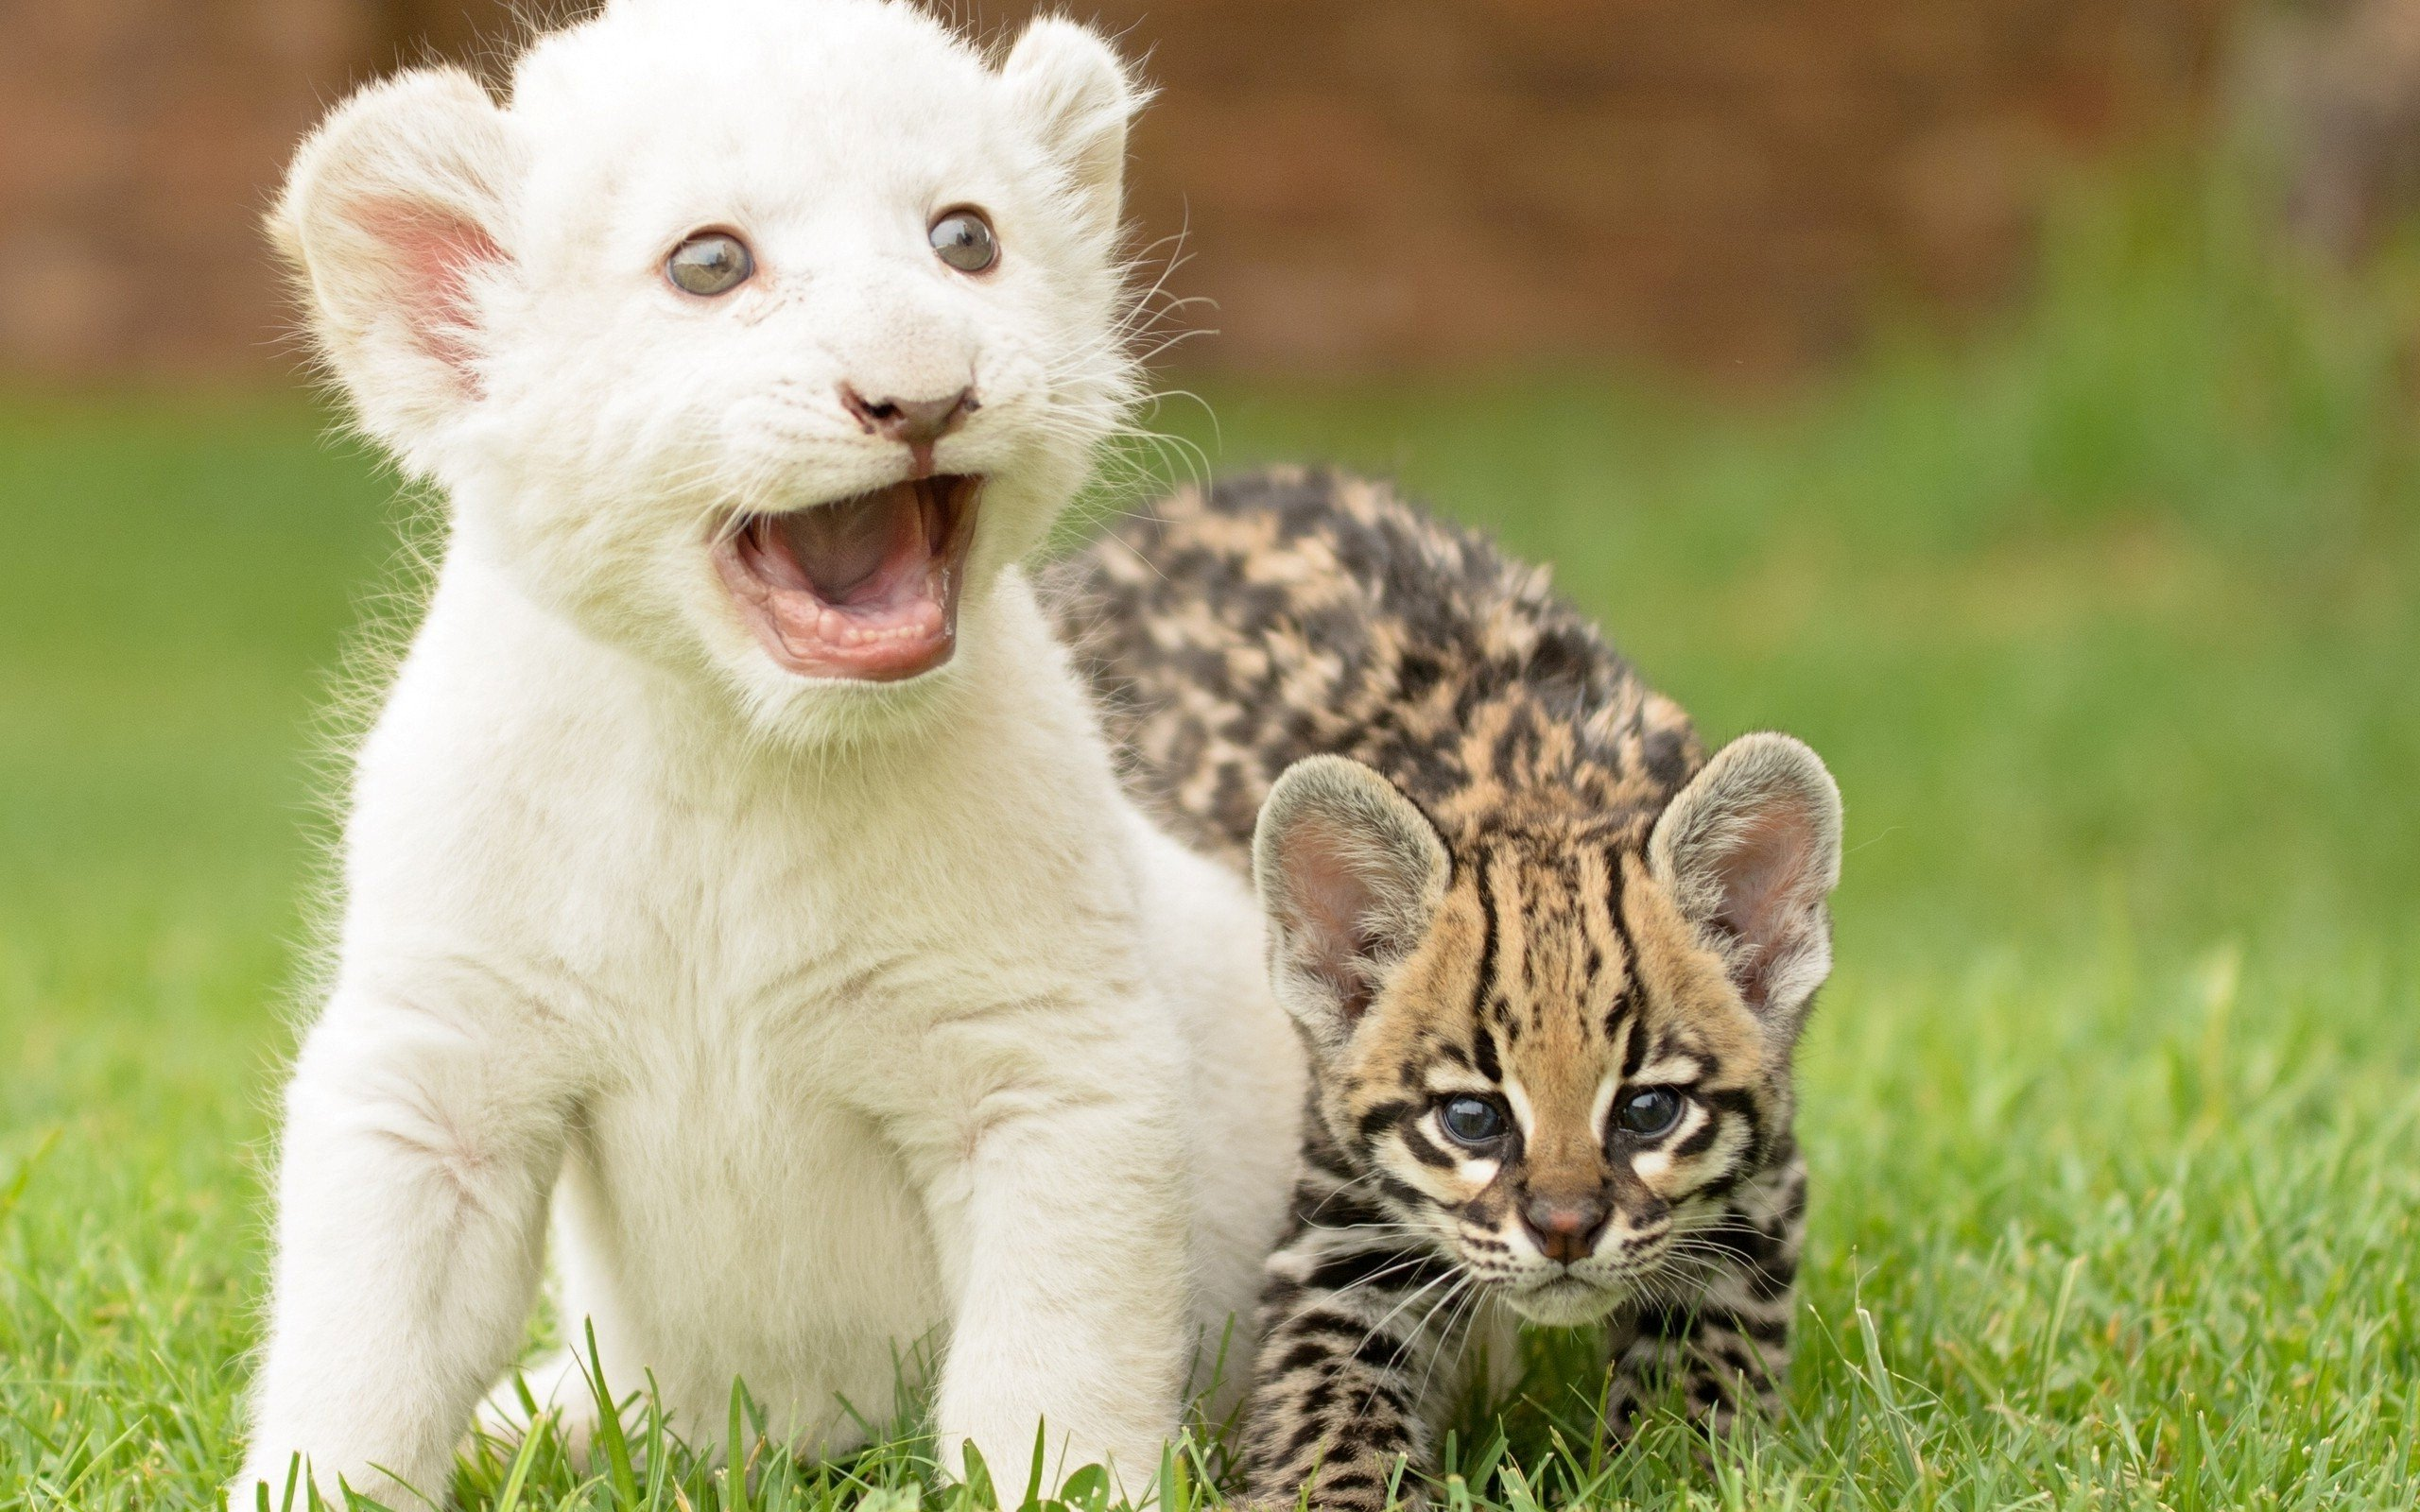 Aravind 3d Wallpapers Beauty Cute Amazing Animal White Lion Cub With Cat